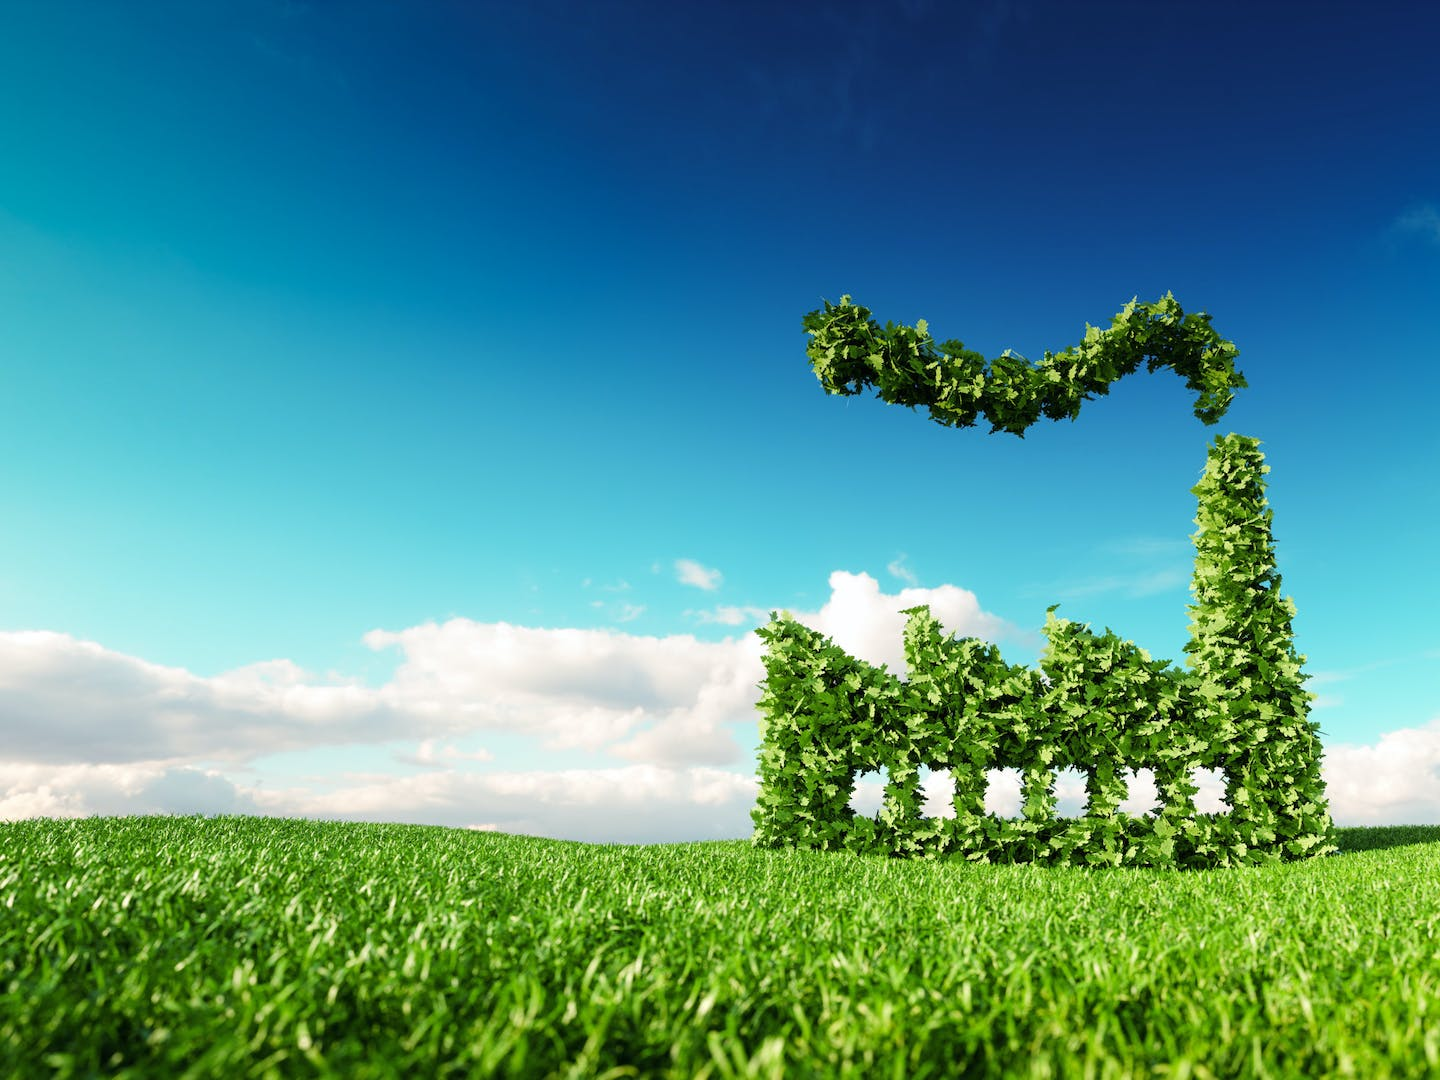 Carbon neutrality challenges in manufacturing